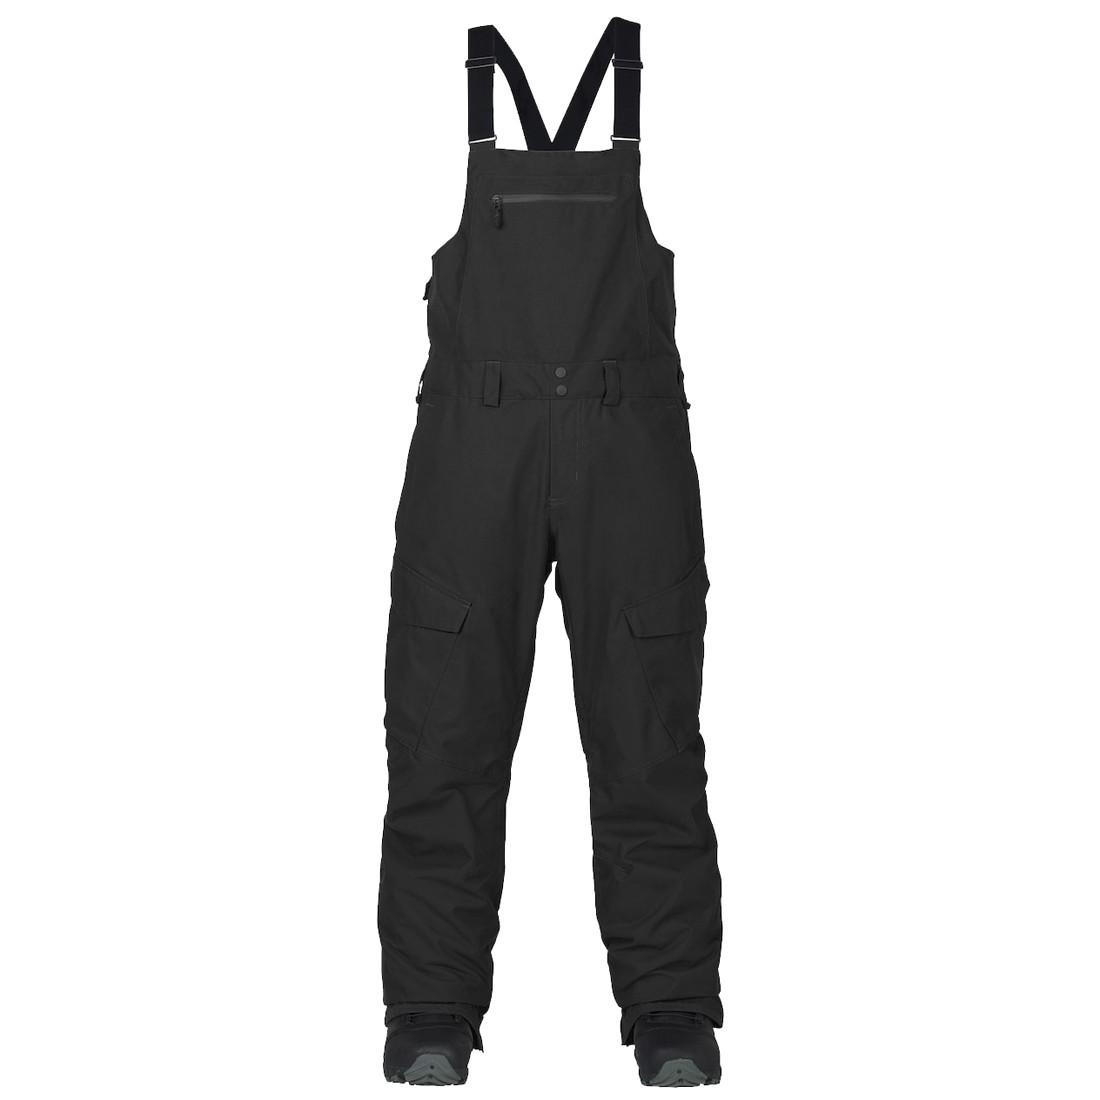 Burton Штаны для сноуборда Burton Reserve Bib Pant TRUE BLACK, , , FW18 S сумка для документов burton tote true black canvas